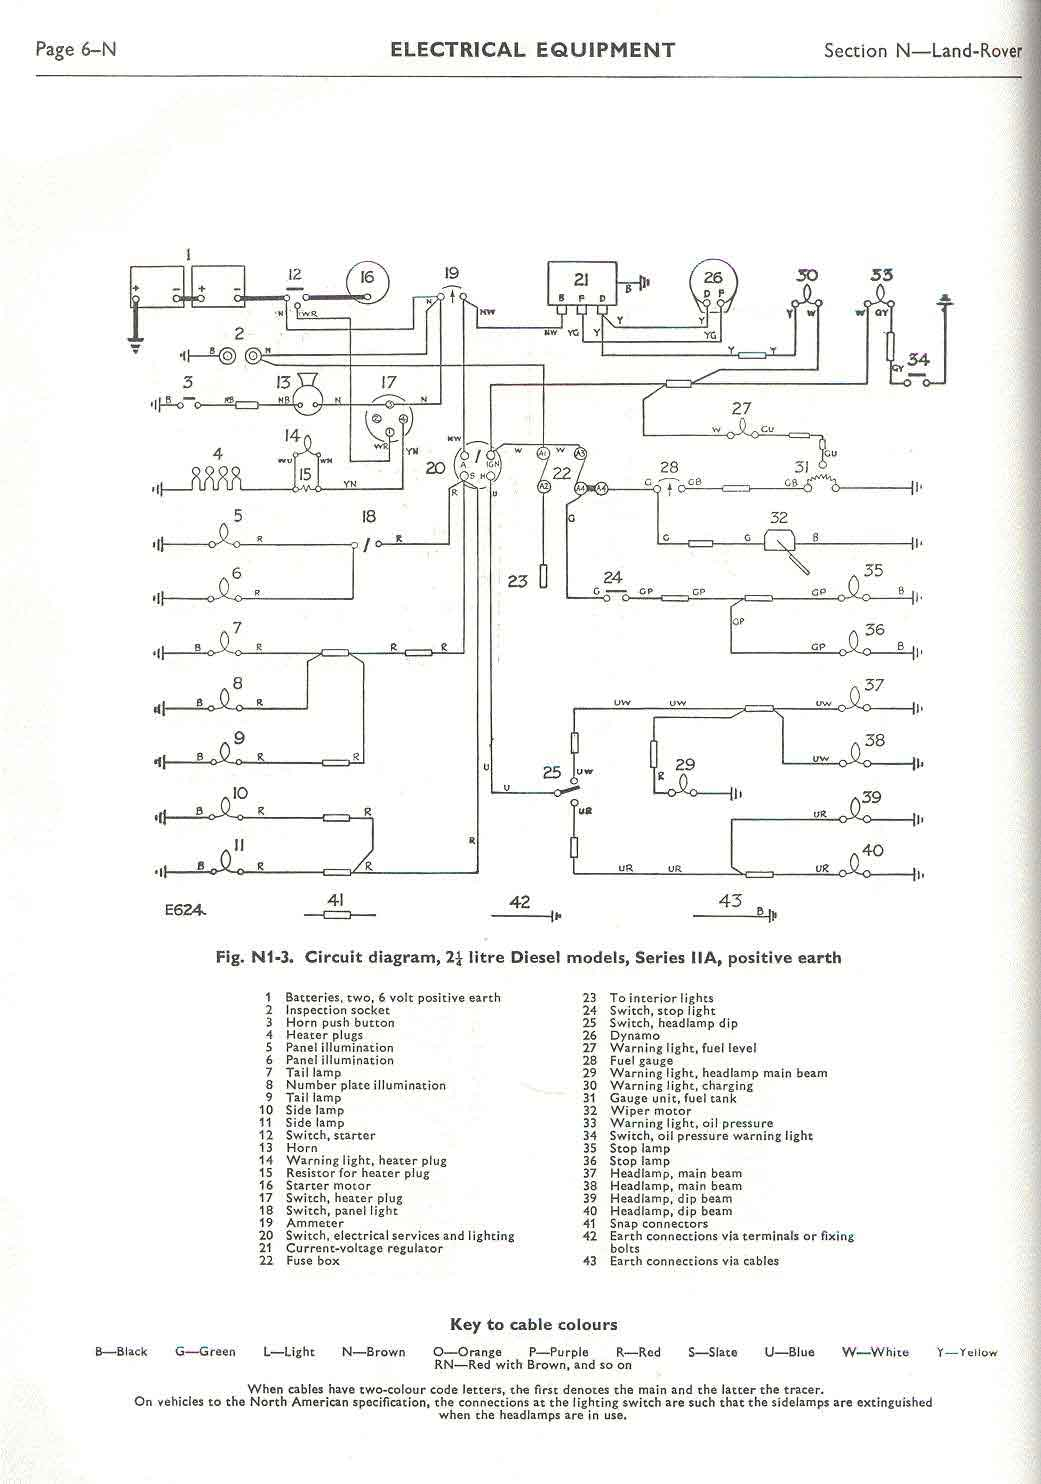 Land Rover Wiring Diagram Series List Of Schematic Circuit Wire Harness Connectors Bosch Free Download Faq Repair Maintenance Electrical Rh Lrfaq Org 3